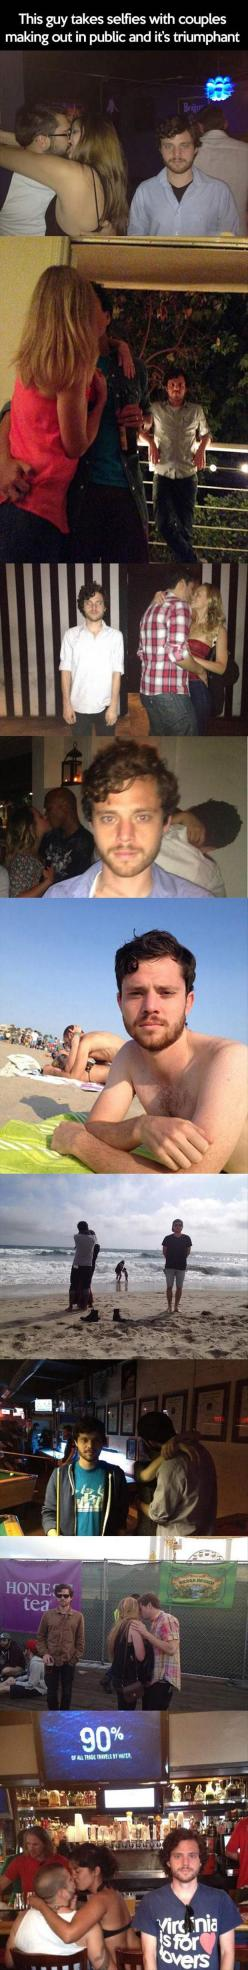 This is glorious. He's like a self appointed third wheel. #compartirvideos #funnypictures #uploadfunny: Awesome Selfies, Funny Guys, Funny Pictures, Awkward Funny, Funny Humor Hilarious, Couple, Selfies Funny, Guy Takes